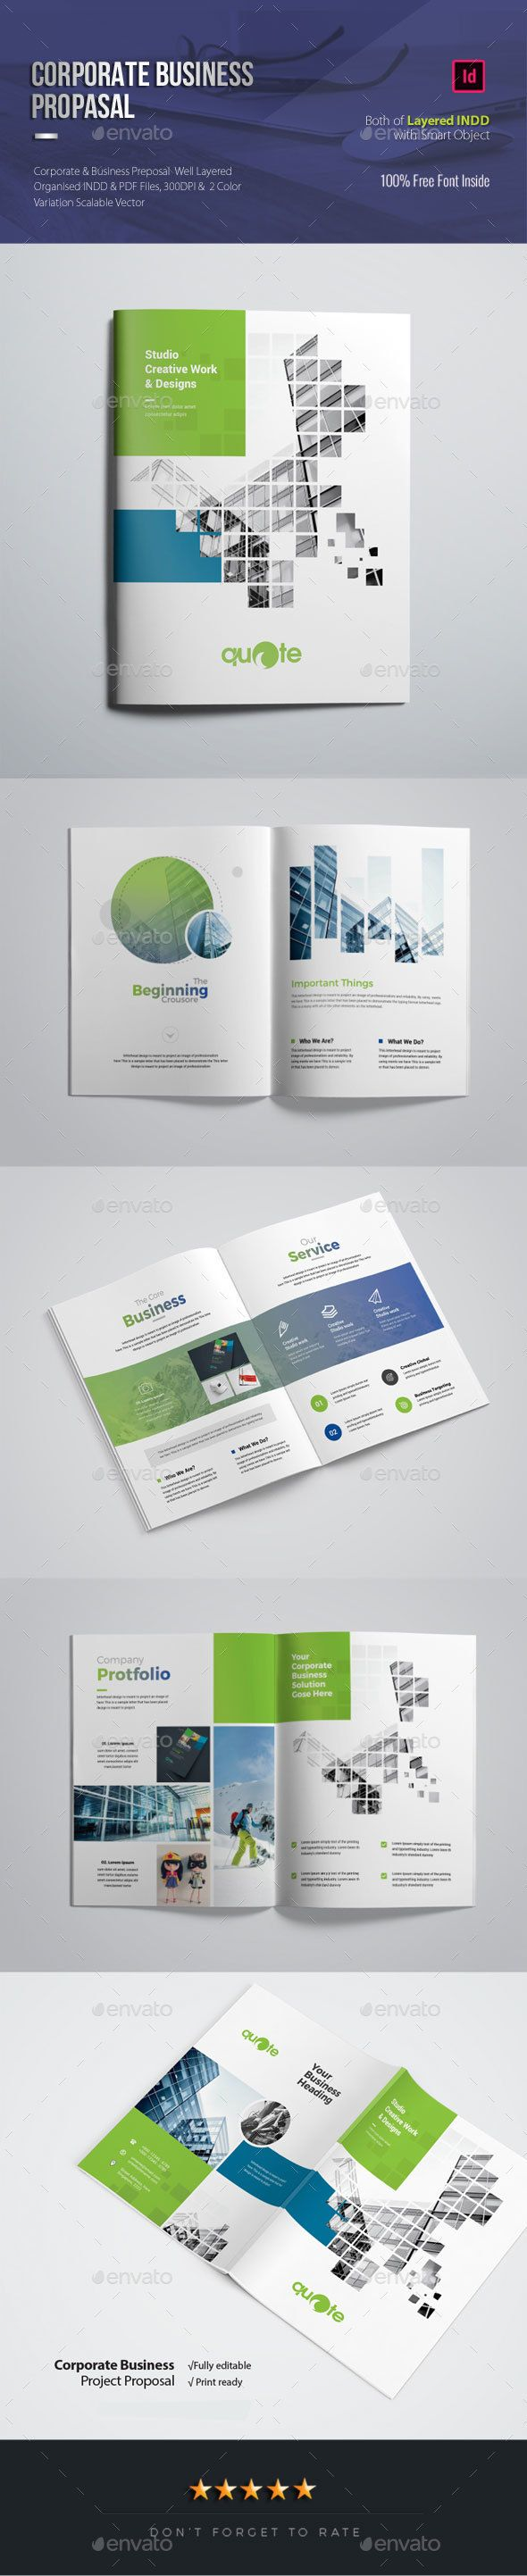 Corporate Business Proposal Brochure Design Template Indesign Indd  Download Here  S     Grap